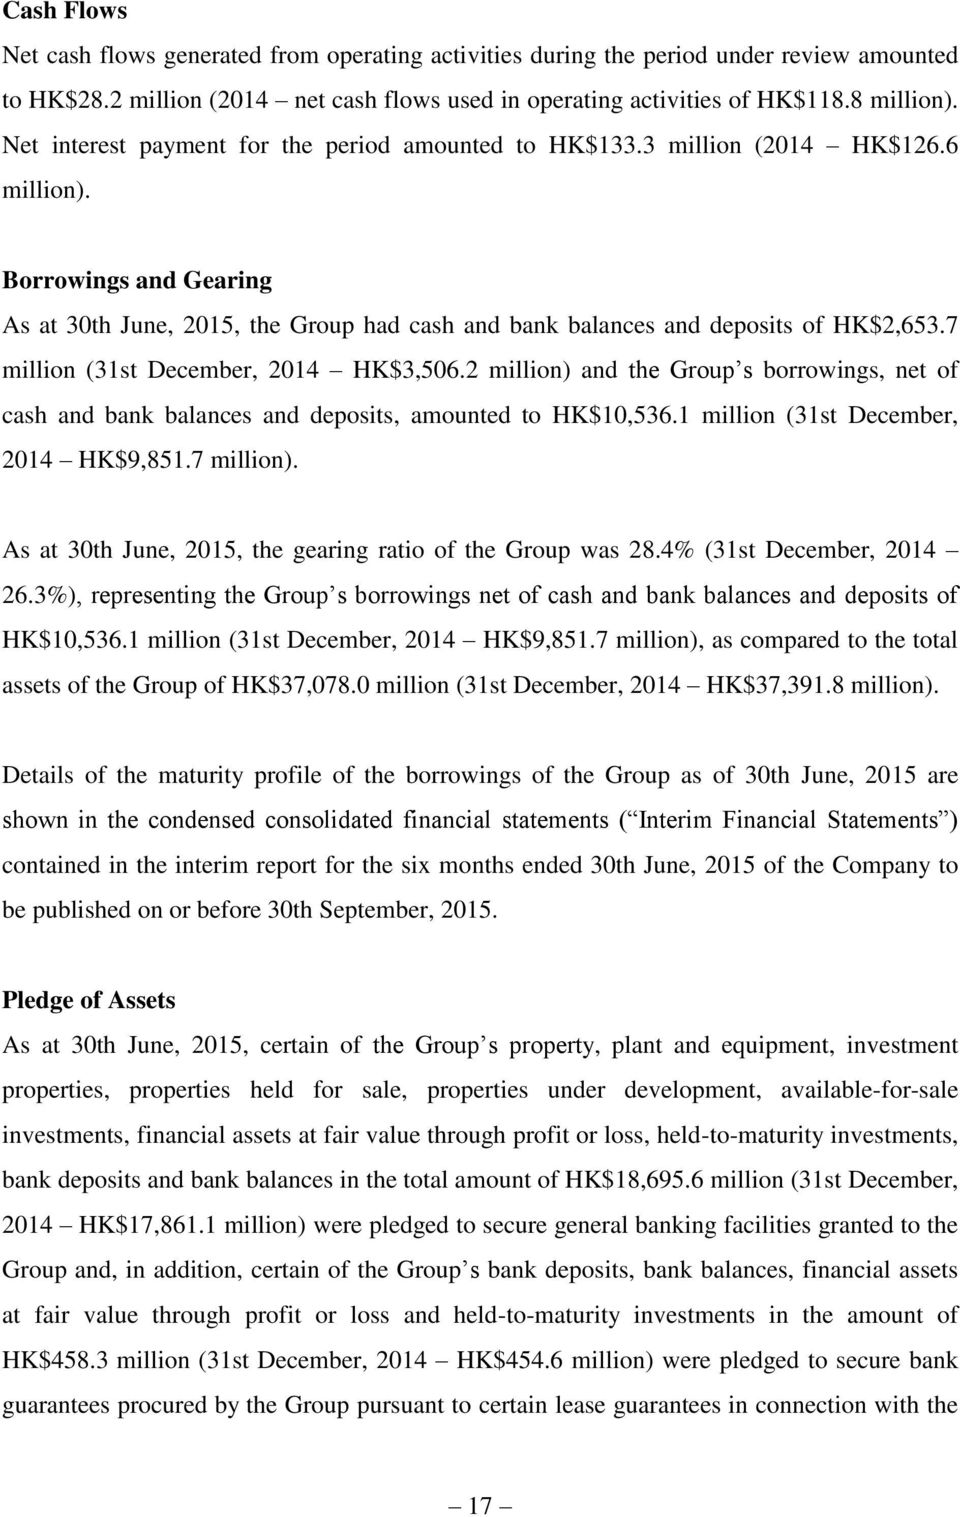 7 million (31st December, 2014 HK$3,506.2 million) and the Group s borrowings, net of cash and bank balances and deposits, amounted to HK$10,536.1 million (31st December, 2014 HK$9,851.7 million).